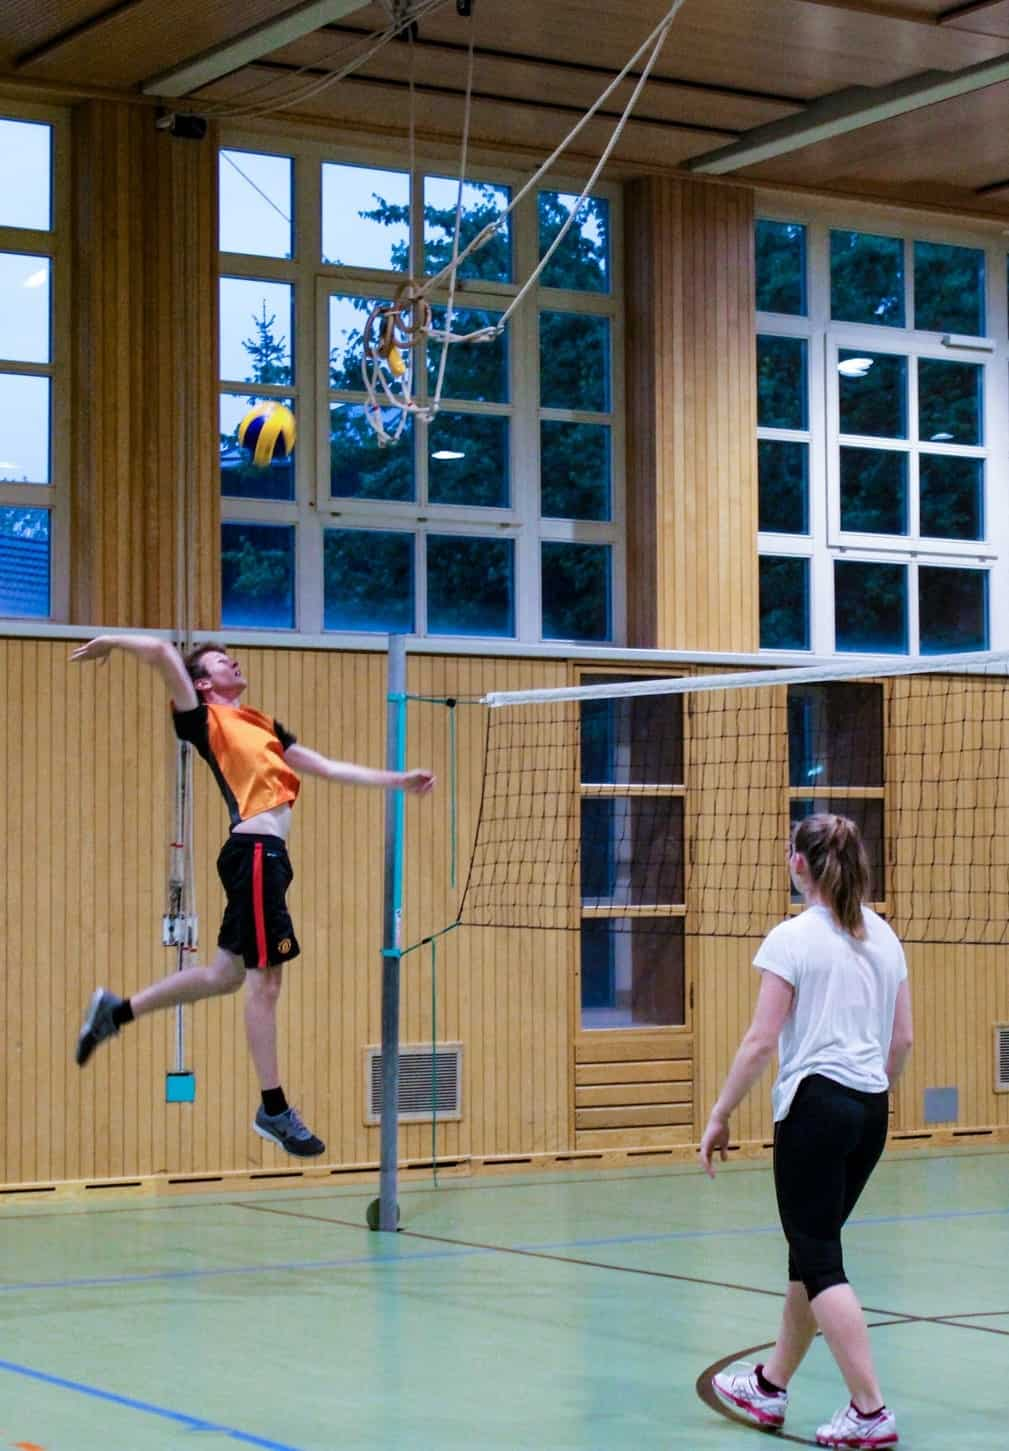 Player spiking a volleyball